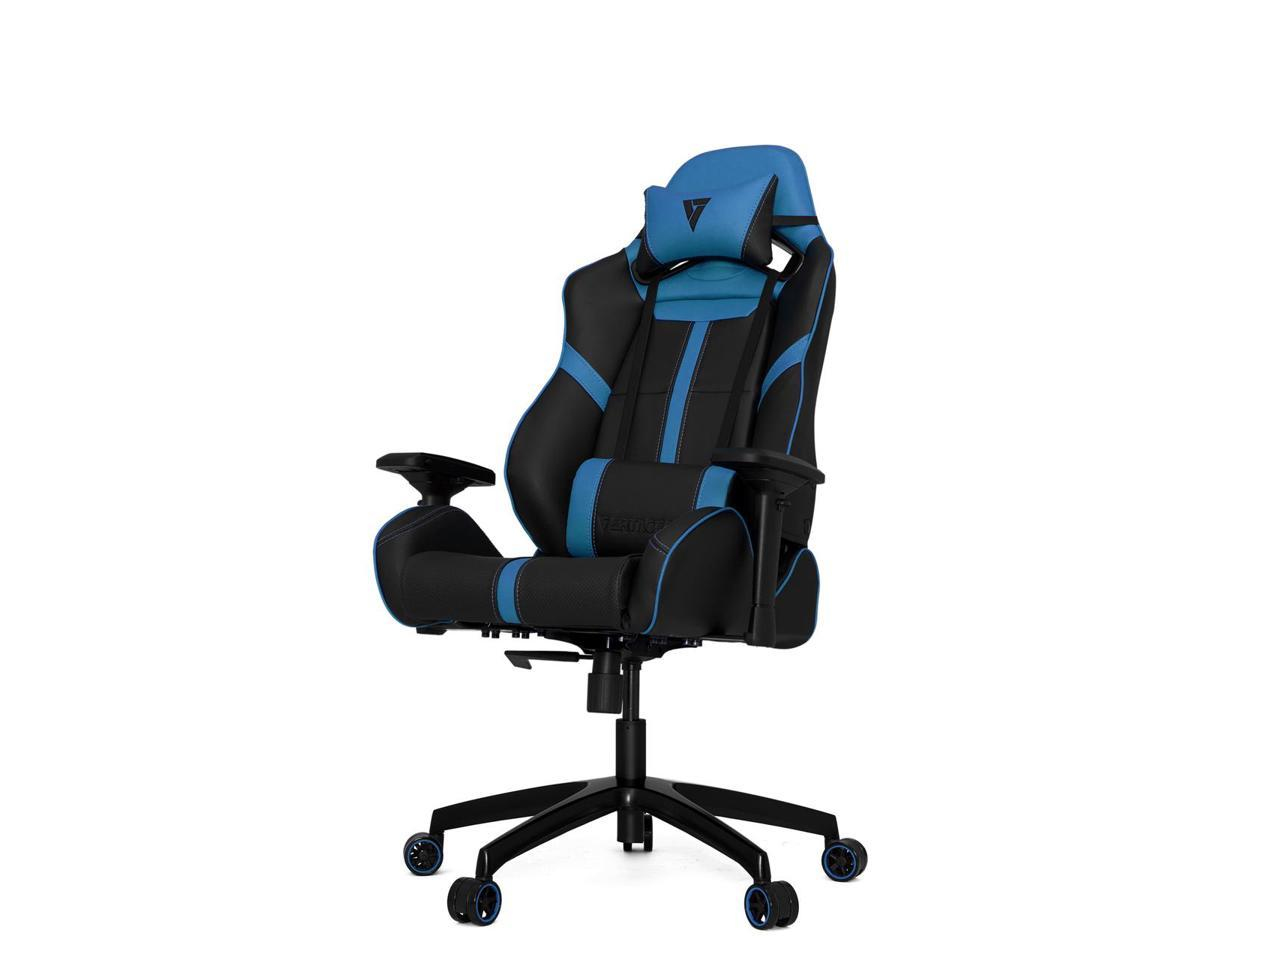 Vertagear SL5000 office/computer chair Padded seat Padded backrest